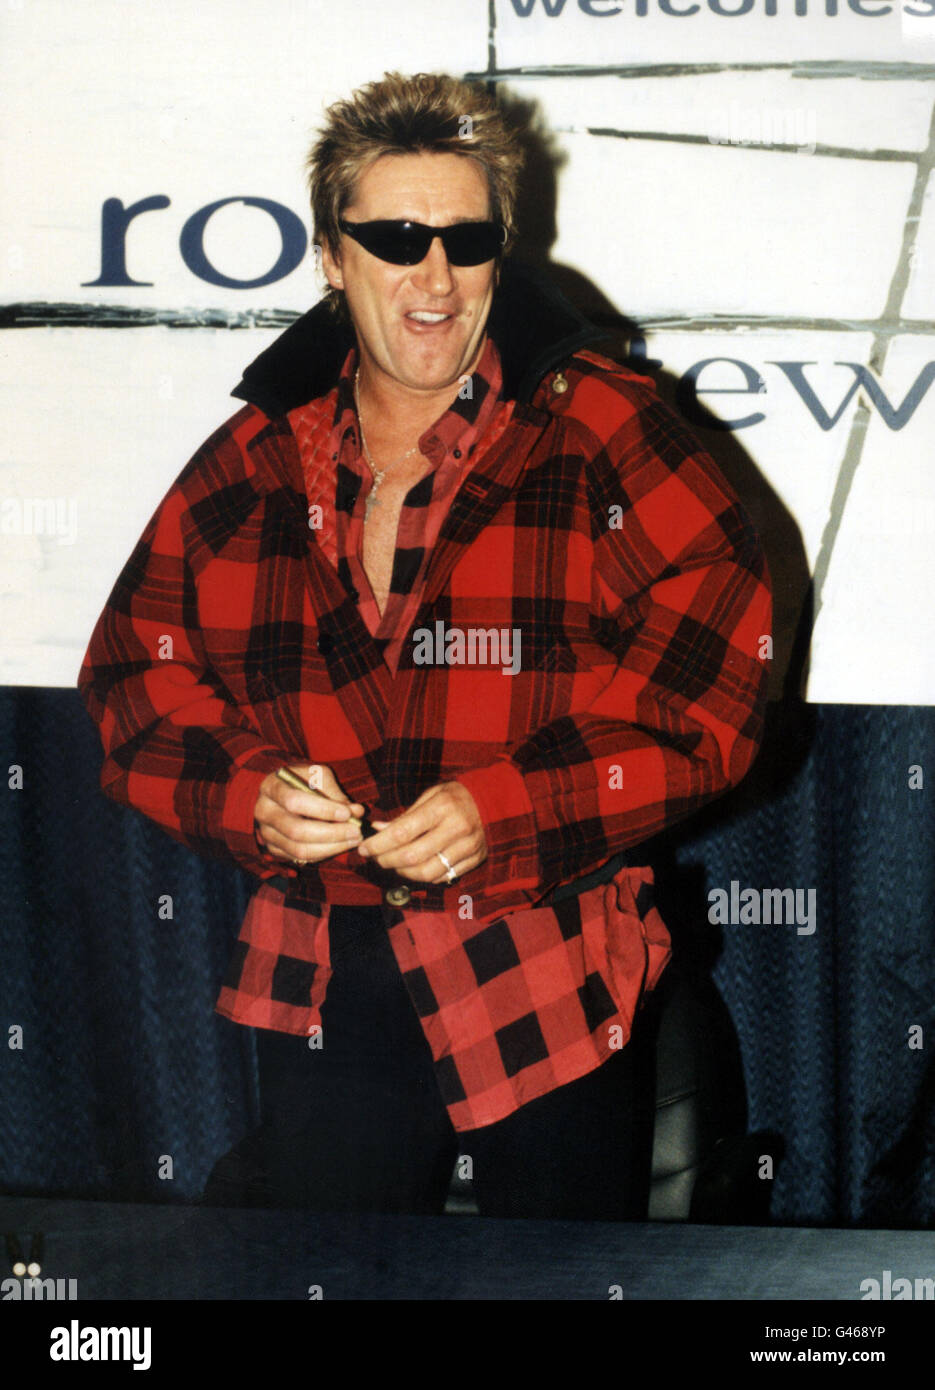 LONDON : 7/11/96 : ROD STEWART AT TOWER RECORDS IN PICCADILLY ...